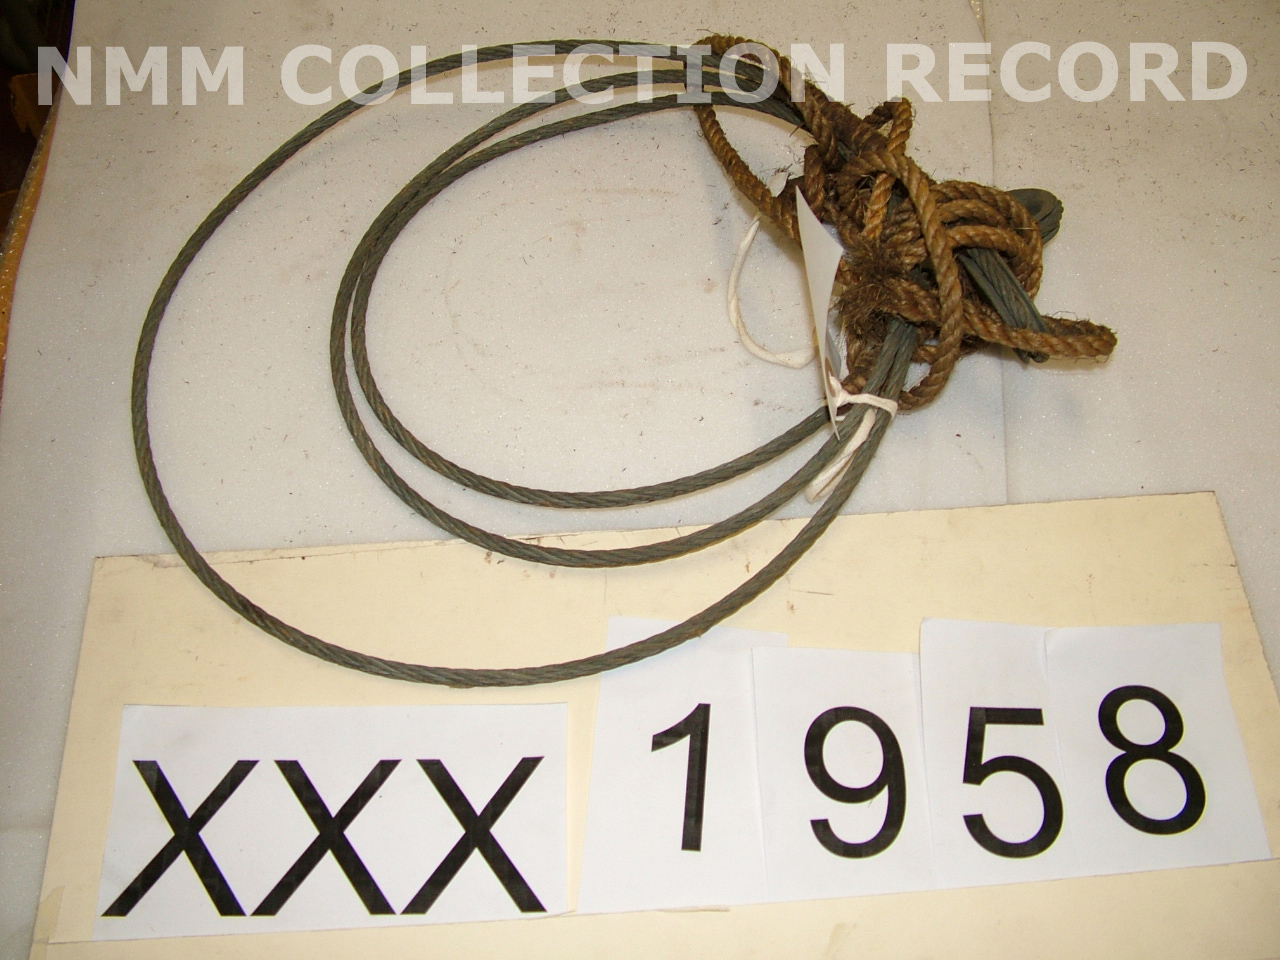 Rope and wire, Rope and wire